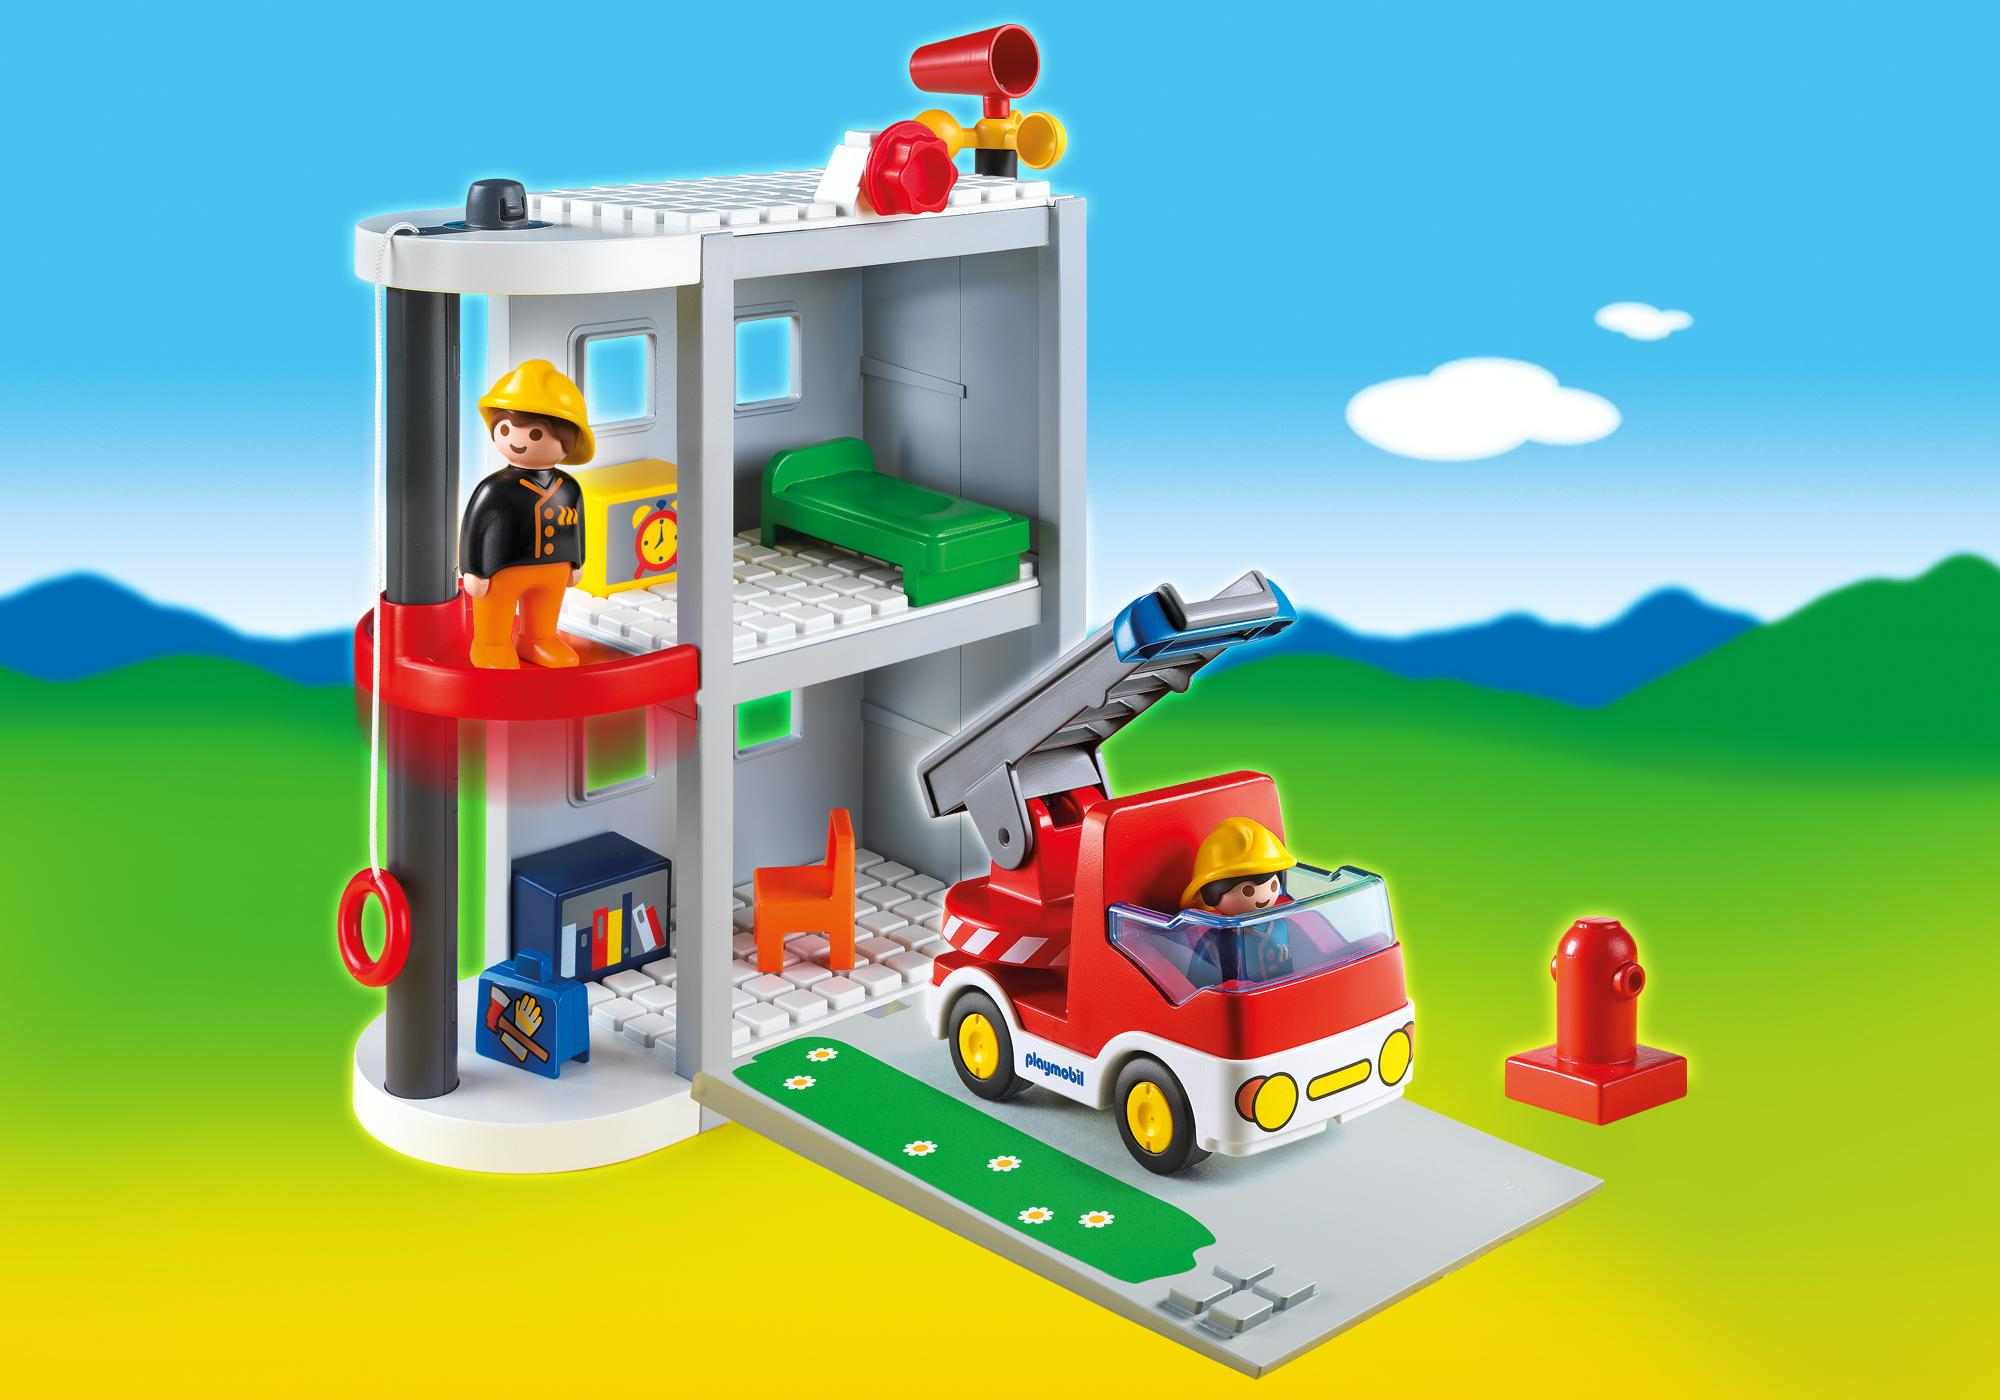 http://media.playmobil.com/i/playmobil/6777-A_product_detail/Meine Mitnehm-Feuerwehrstation